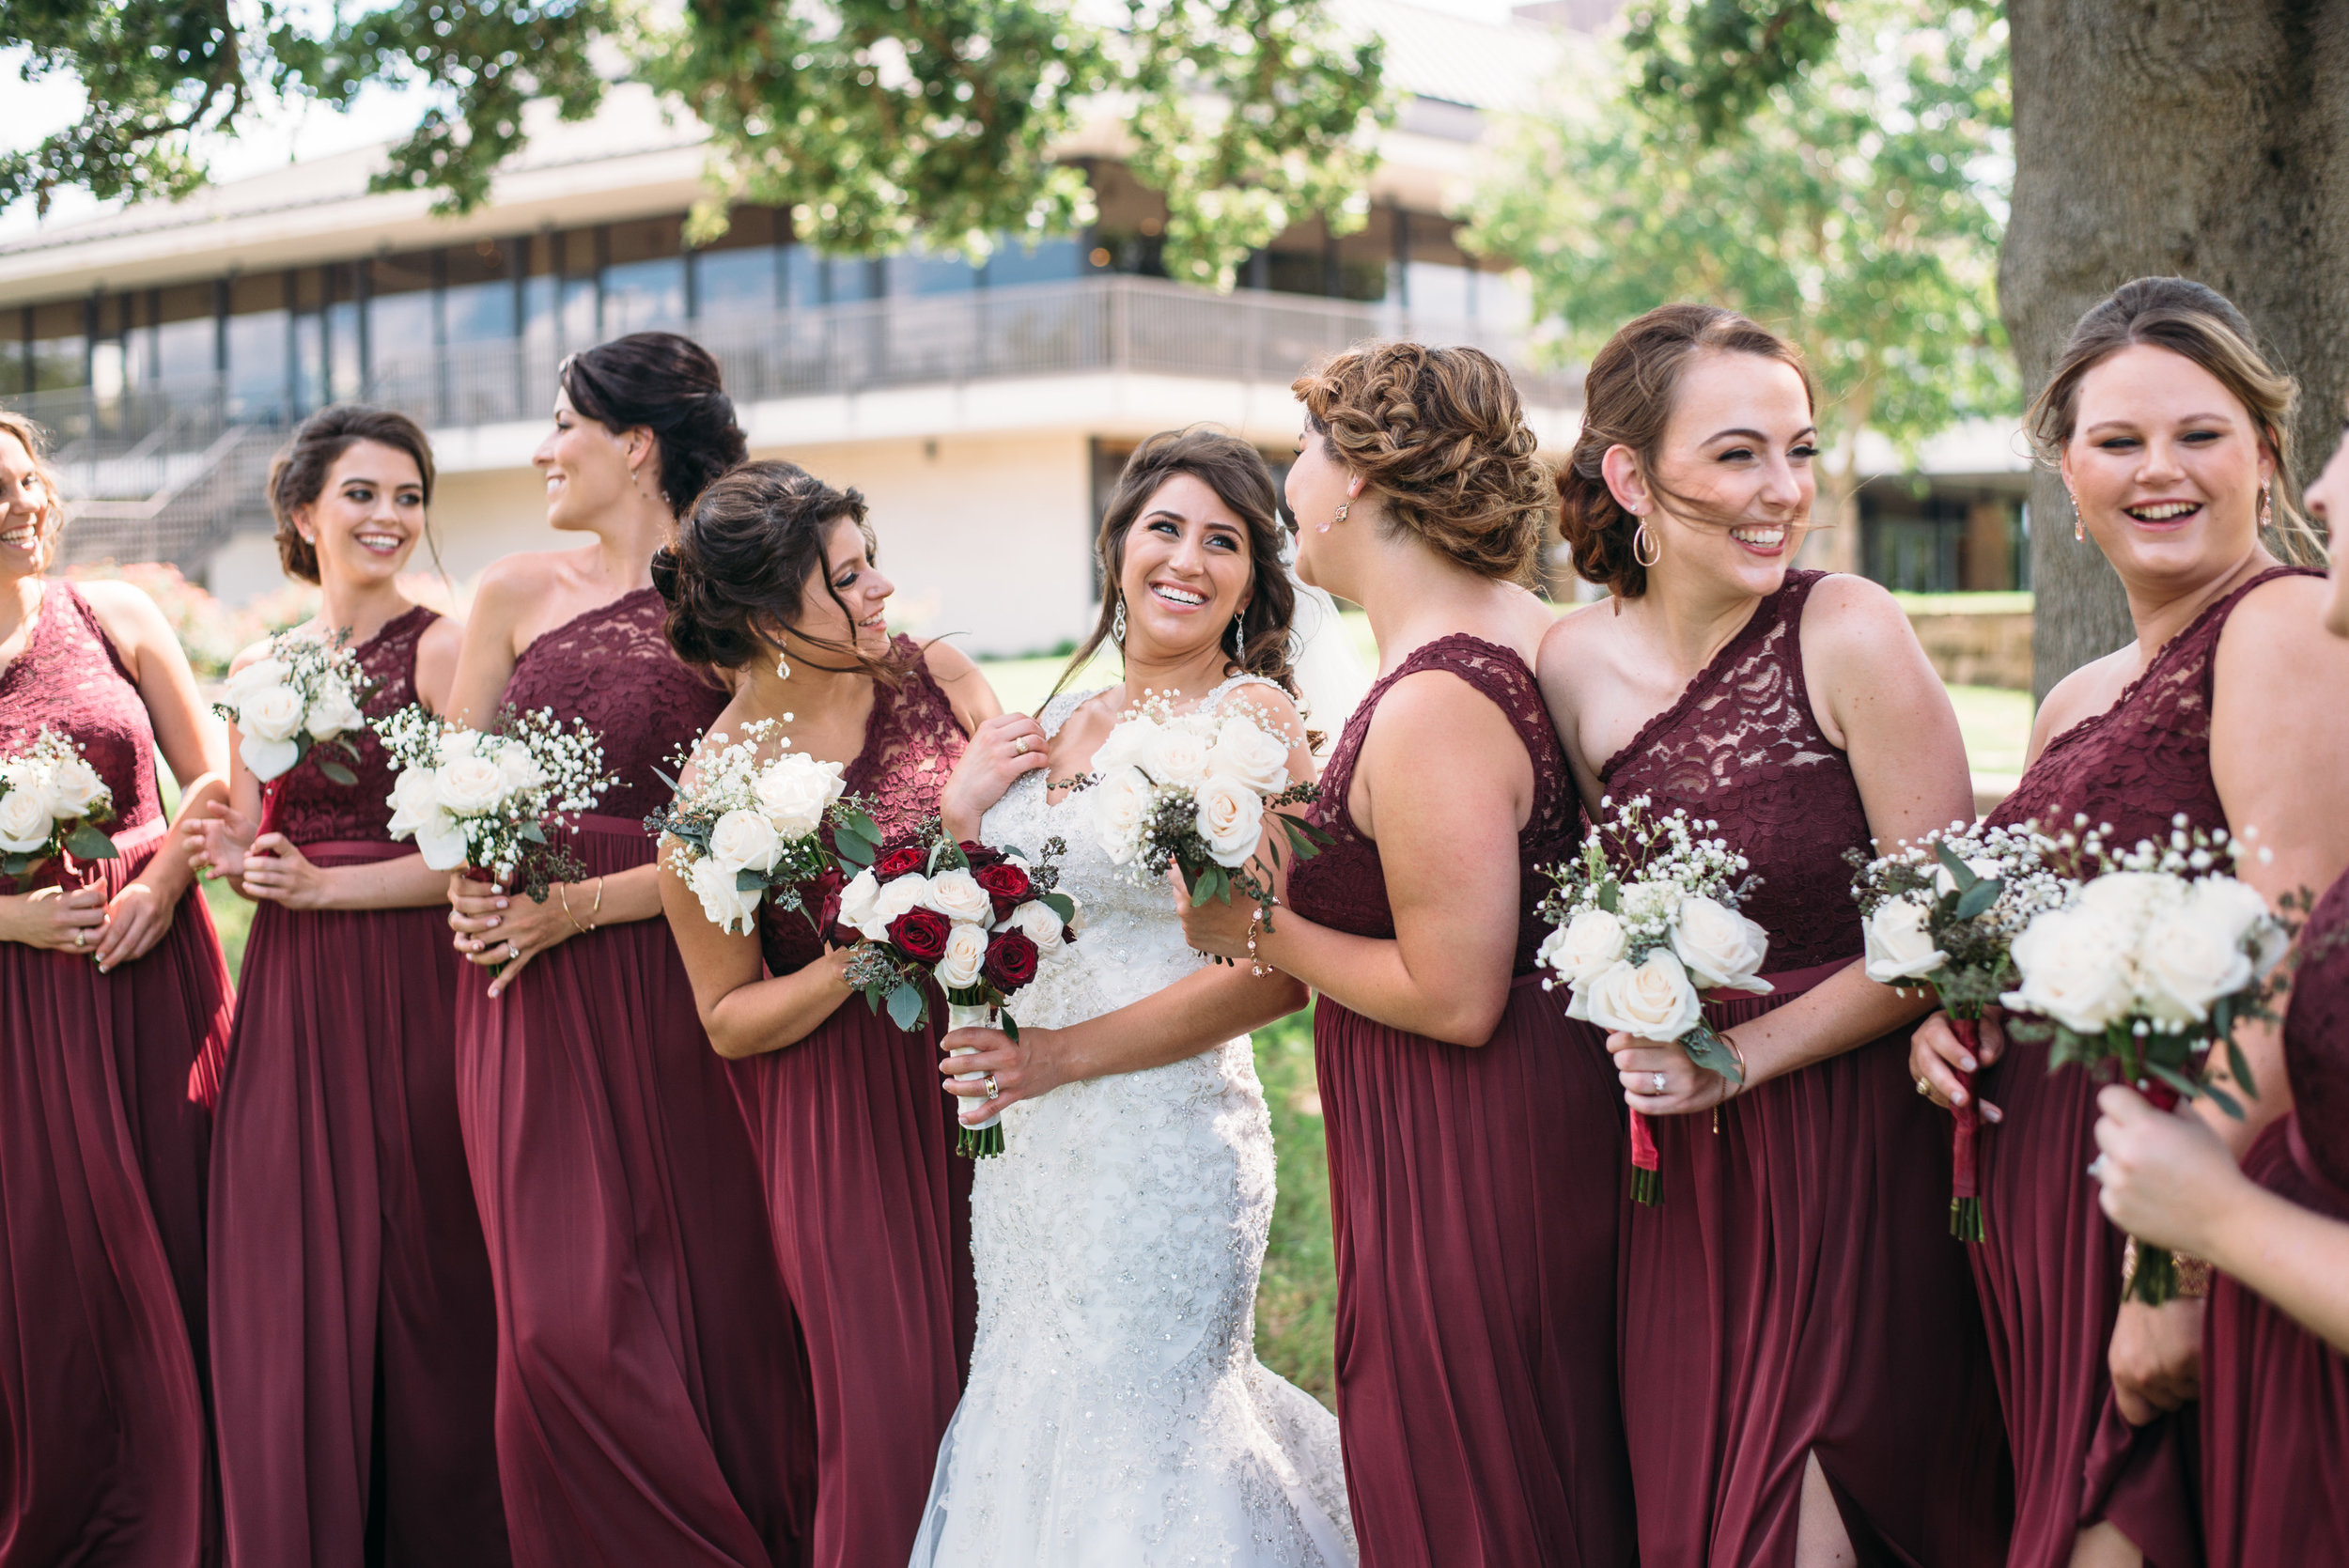 PhillipsEventCenter-AggieWedding-CollegeStationPhotographer_20.jpg